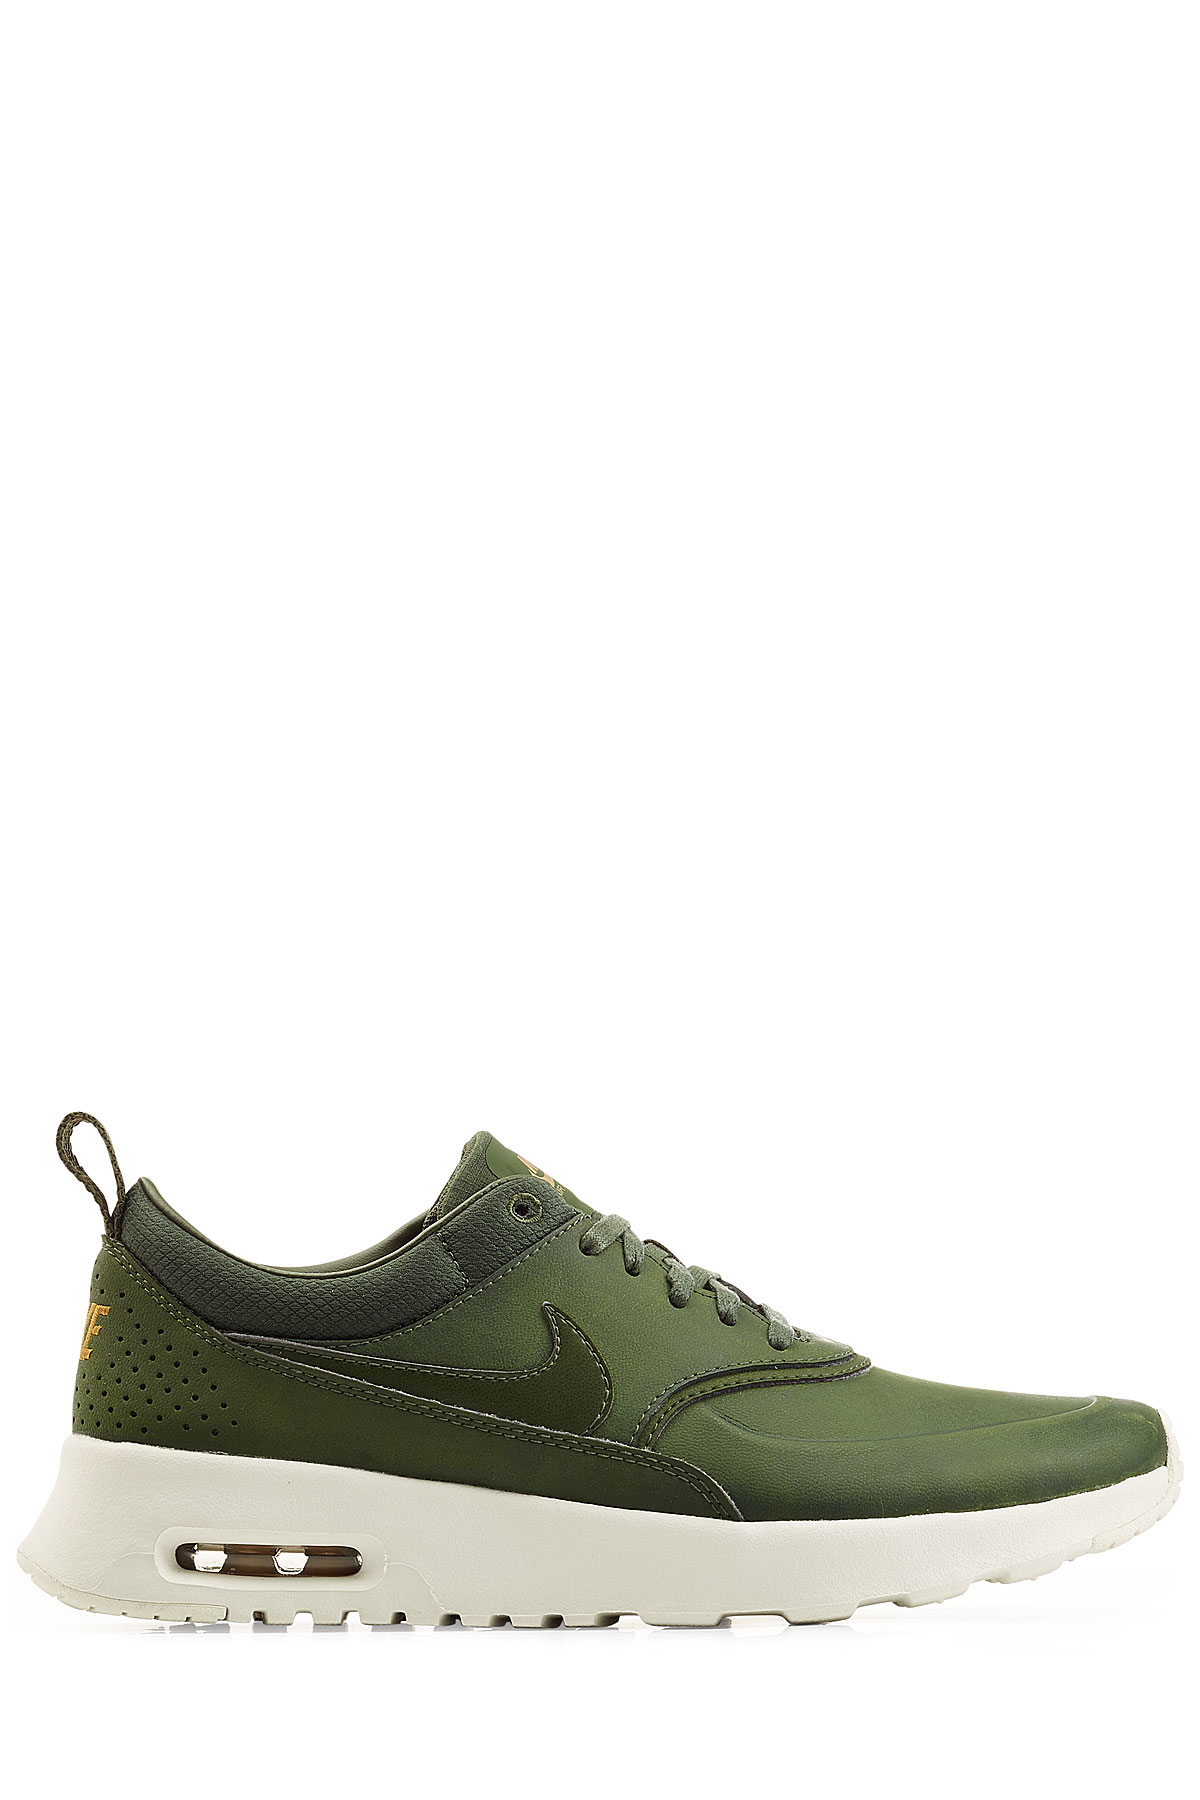 size 40 42b9e 76e45 Nike Air Max Thea Premium Leather Sneakers - Green in Green - Lyst